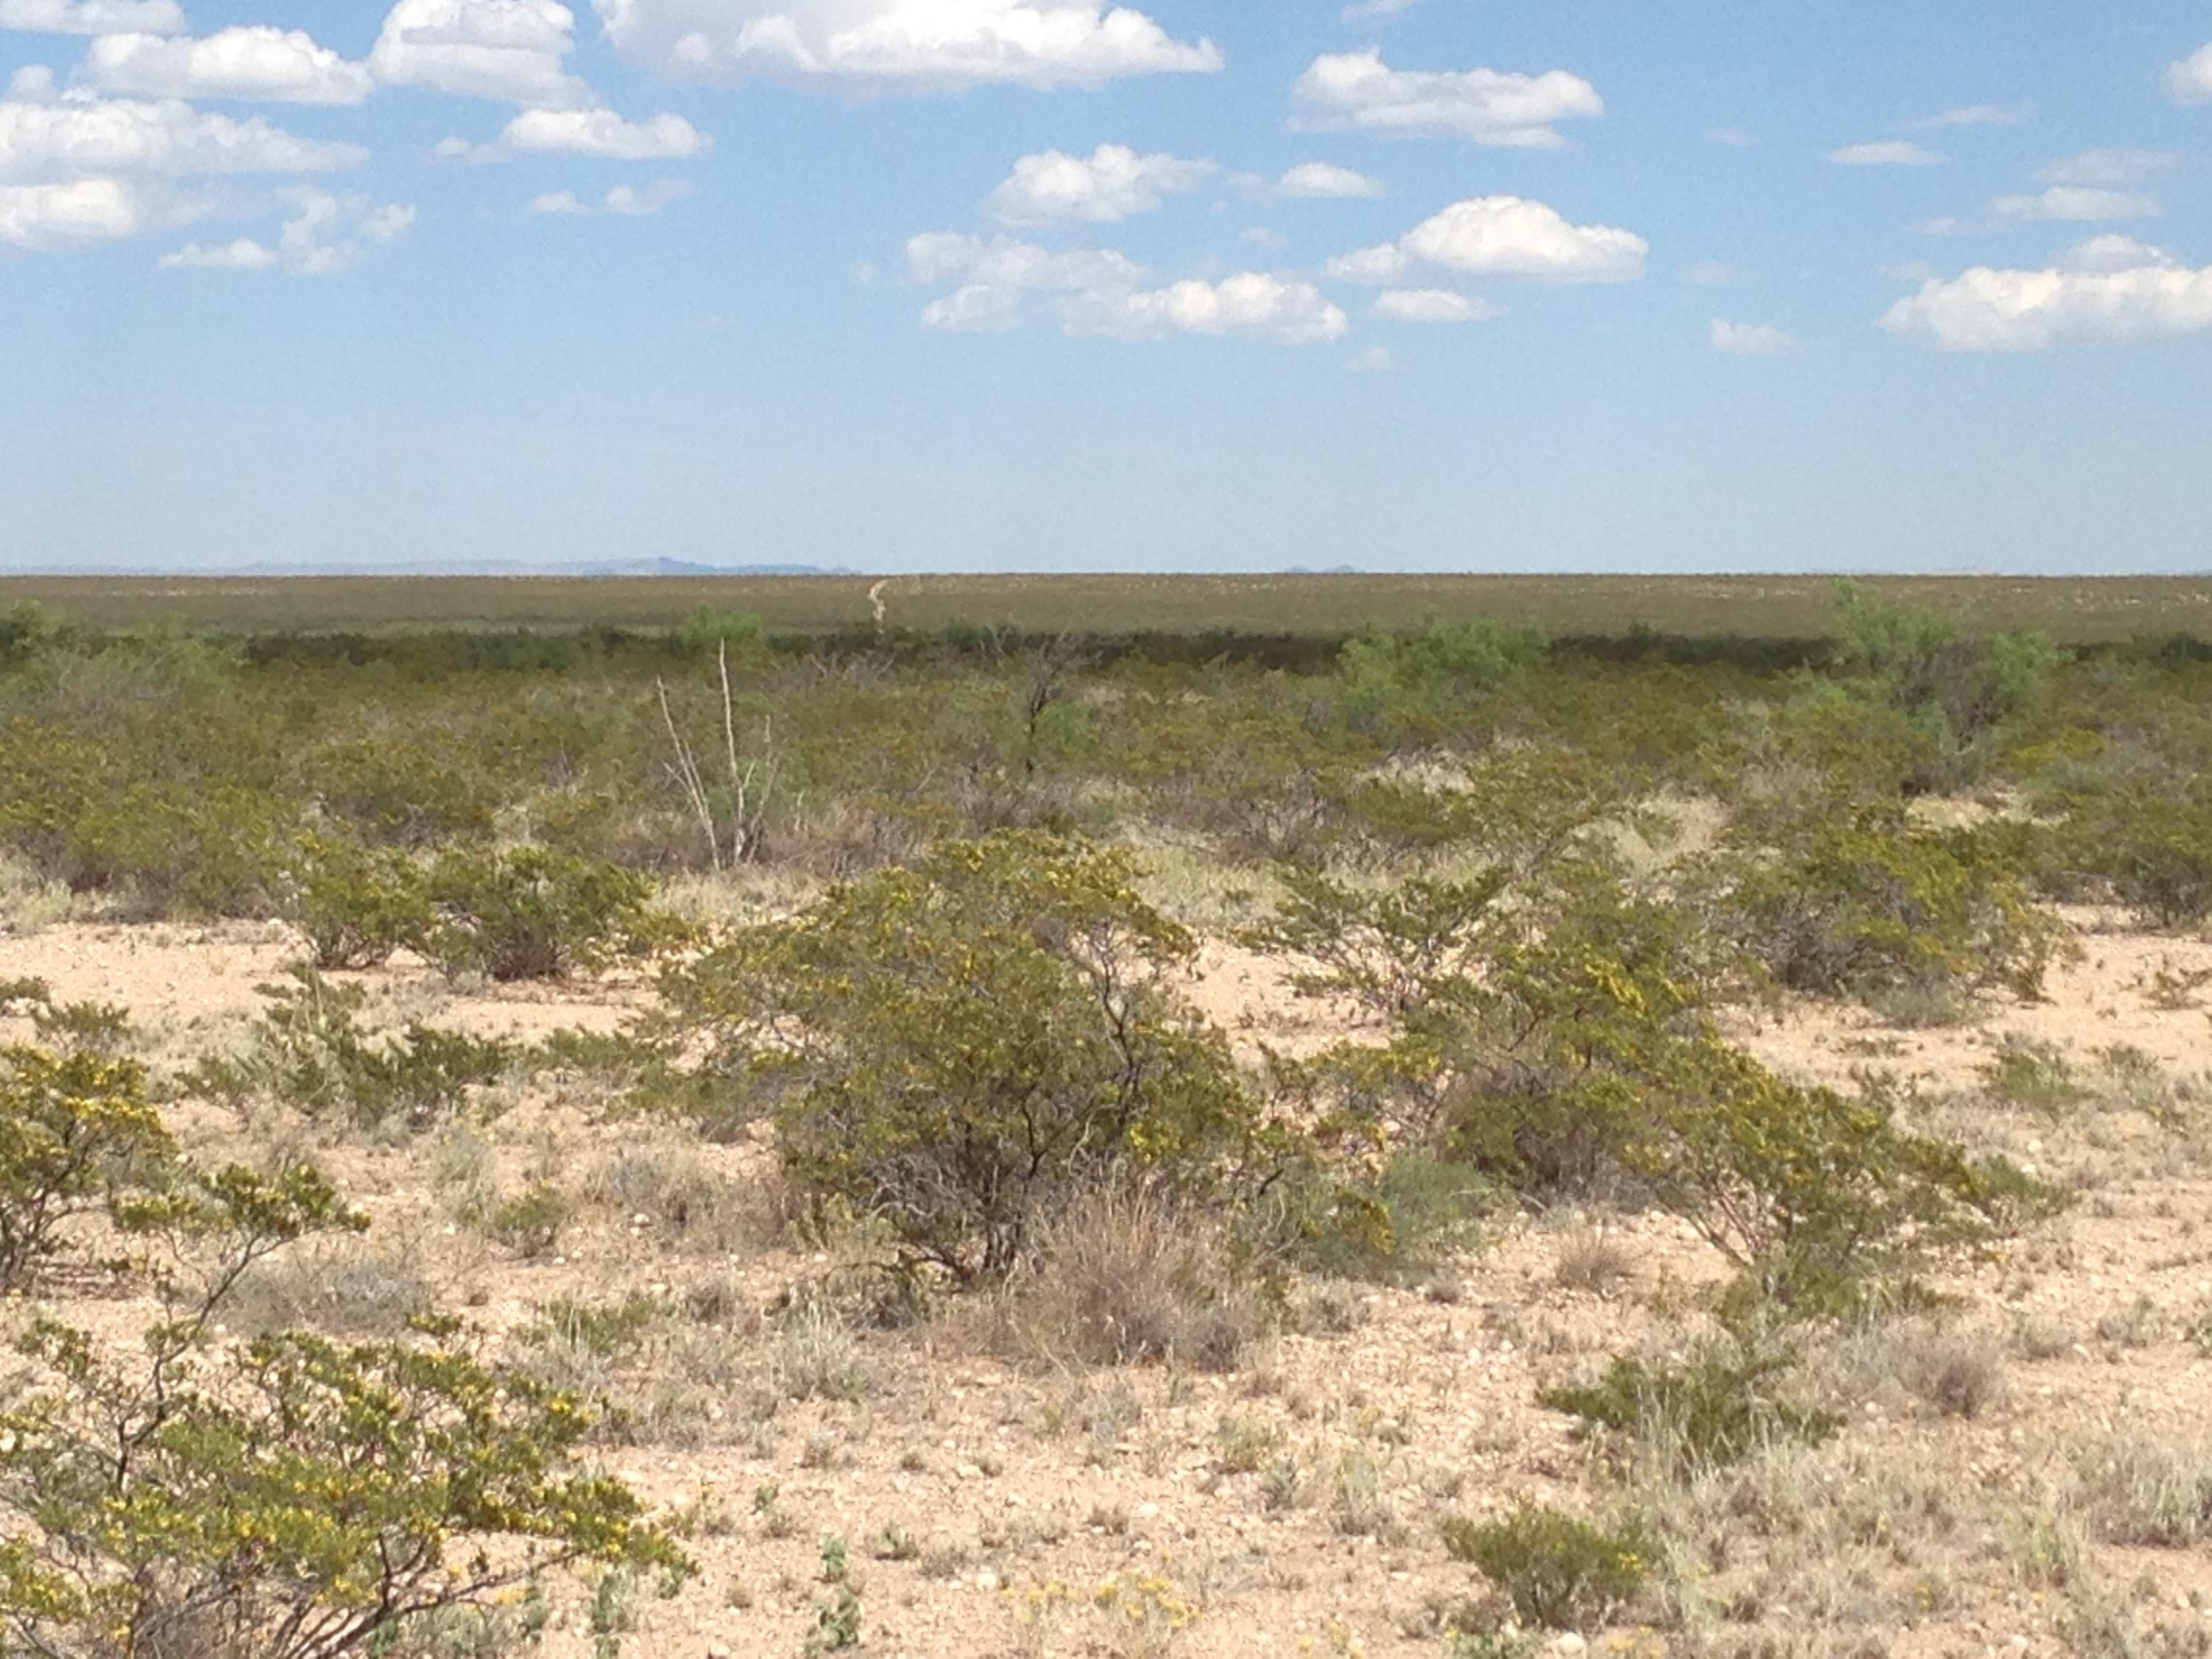 51 SEC 17 SUNSET RANCHES #, Sierra Blanca, Texas 79851, ,Land,For sale,SUNSET RANCHES #,821121